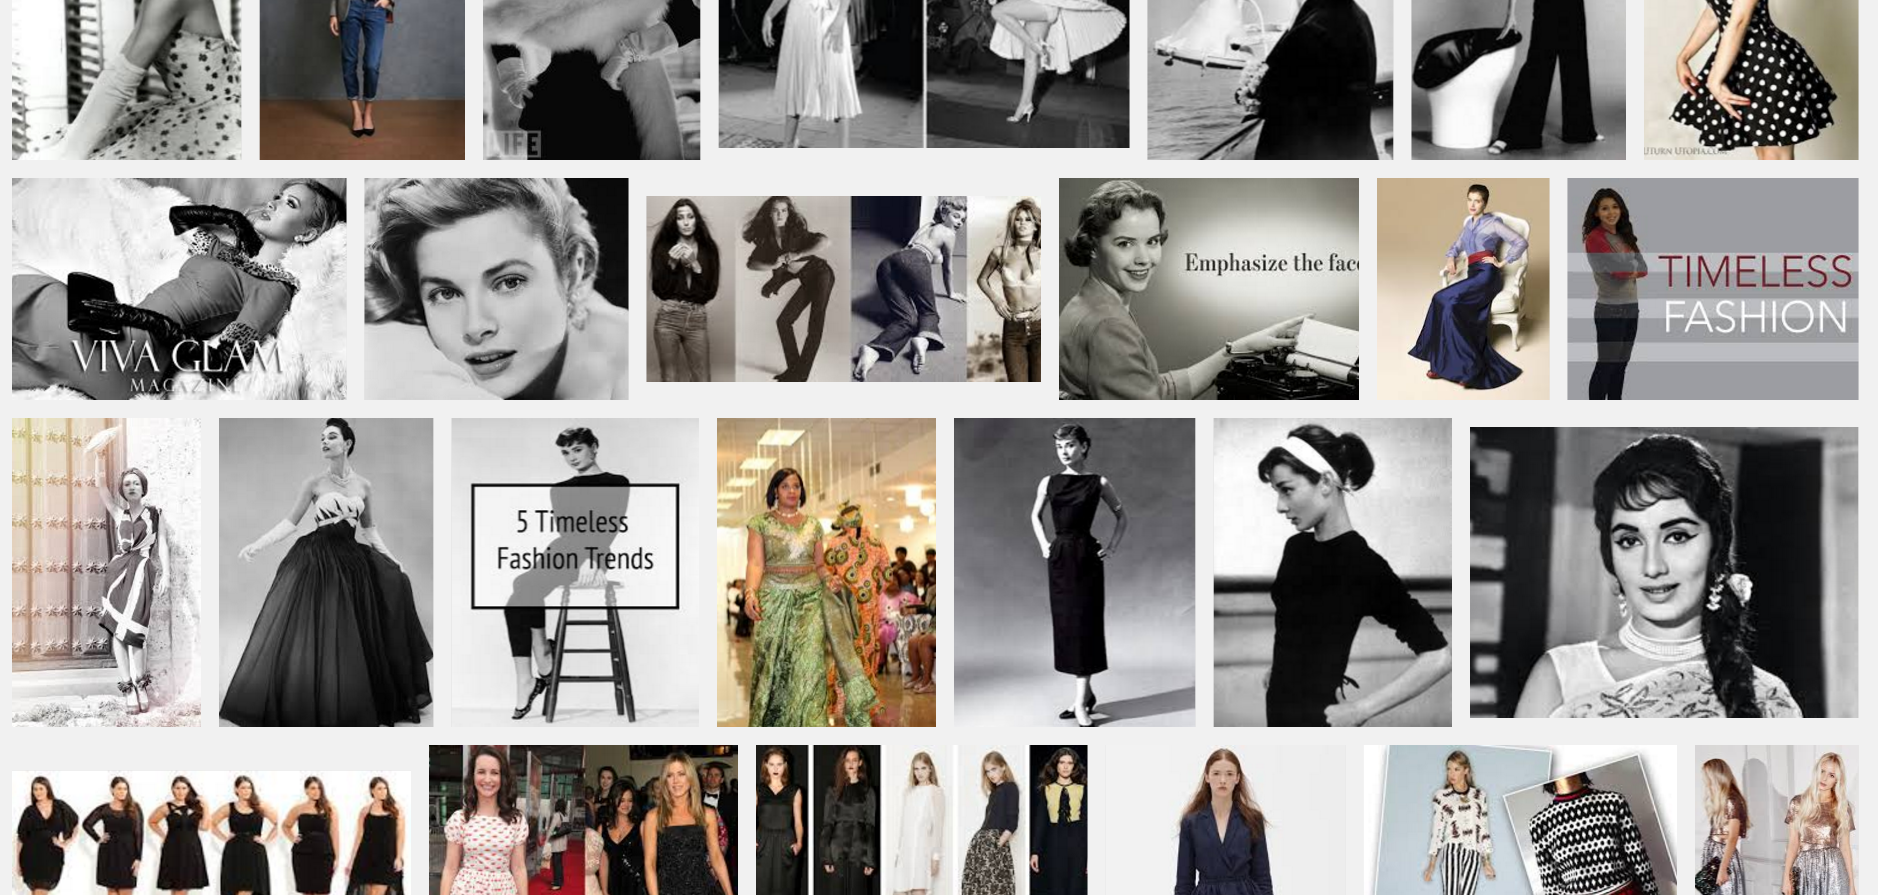 """The top Google Image results for """"timeless fashion"""" include bell-bottom jeans, elbow-length gloves, and variations on Dior's """"New Look"""" - all firmly associated with specific, finite eras.According to the Internet, timeless means that the photo was shot in black and white."""